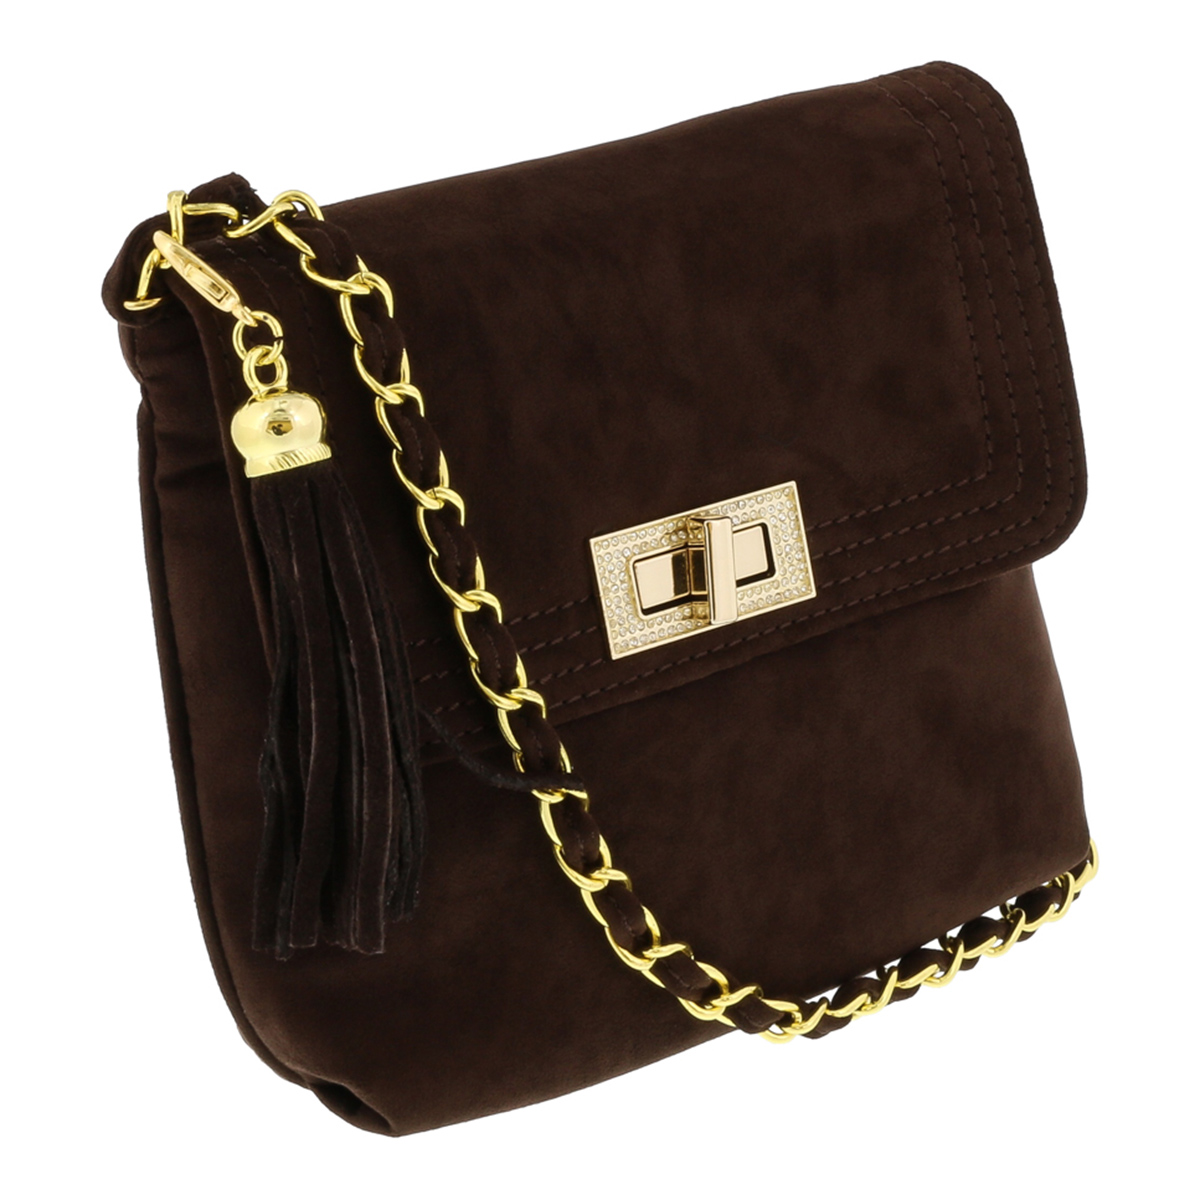 Scheilan  Brown Suede  Tassle Clutch/Shoulder Bag